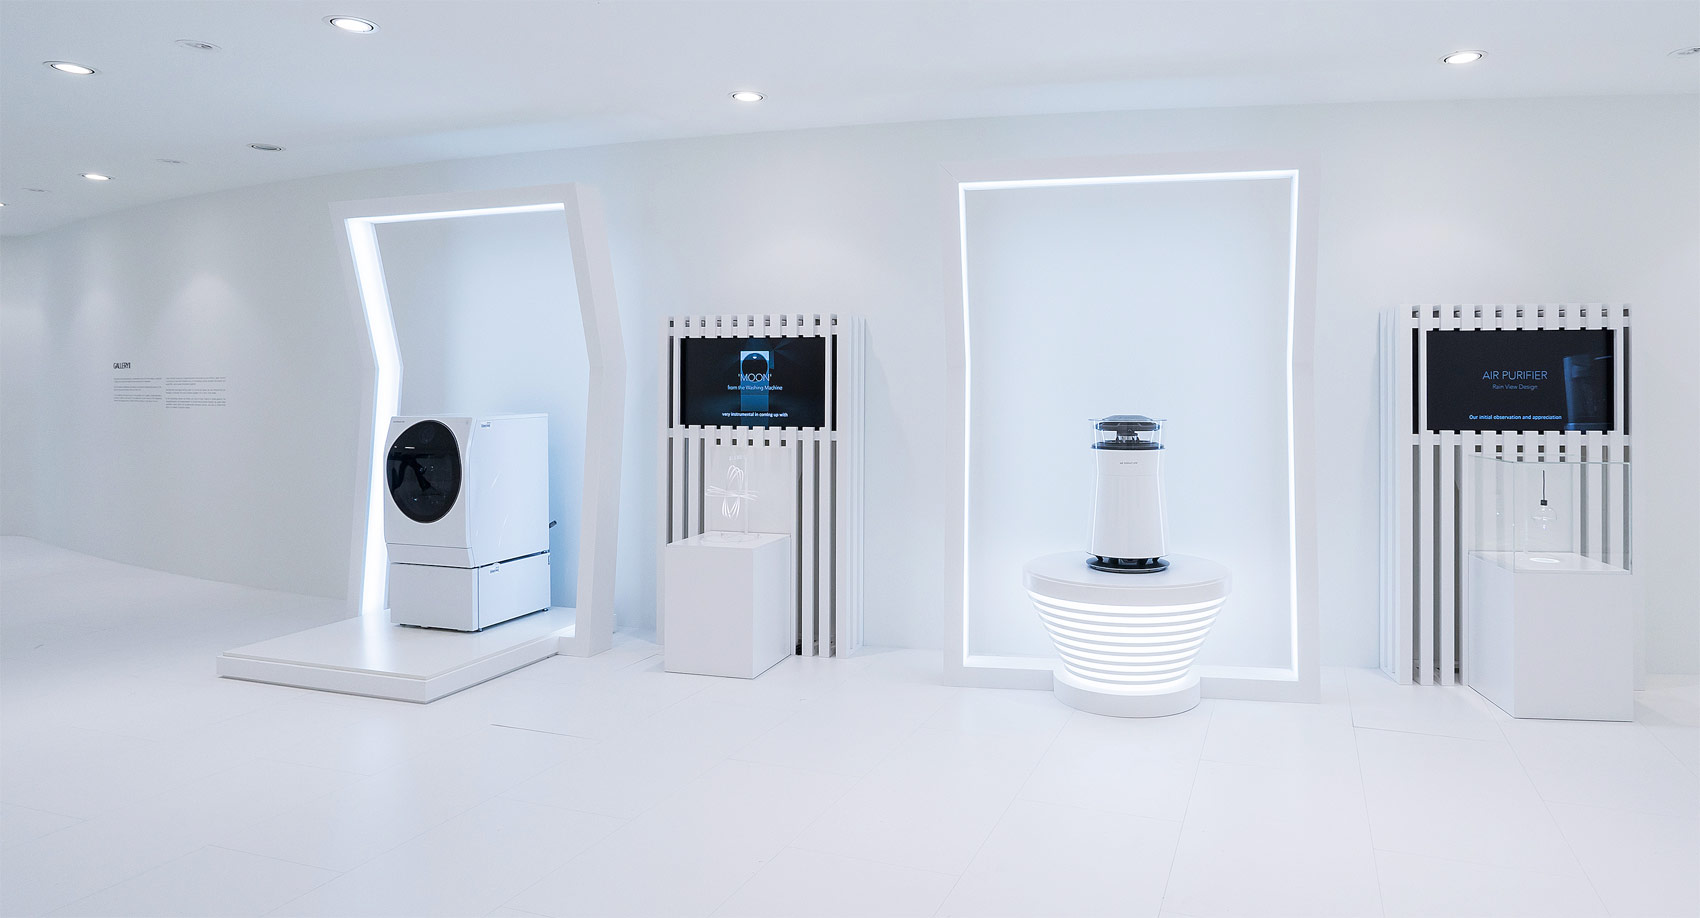 LG Launches New Ultra-Luxury 'LG Signature' Range In Berlin